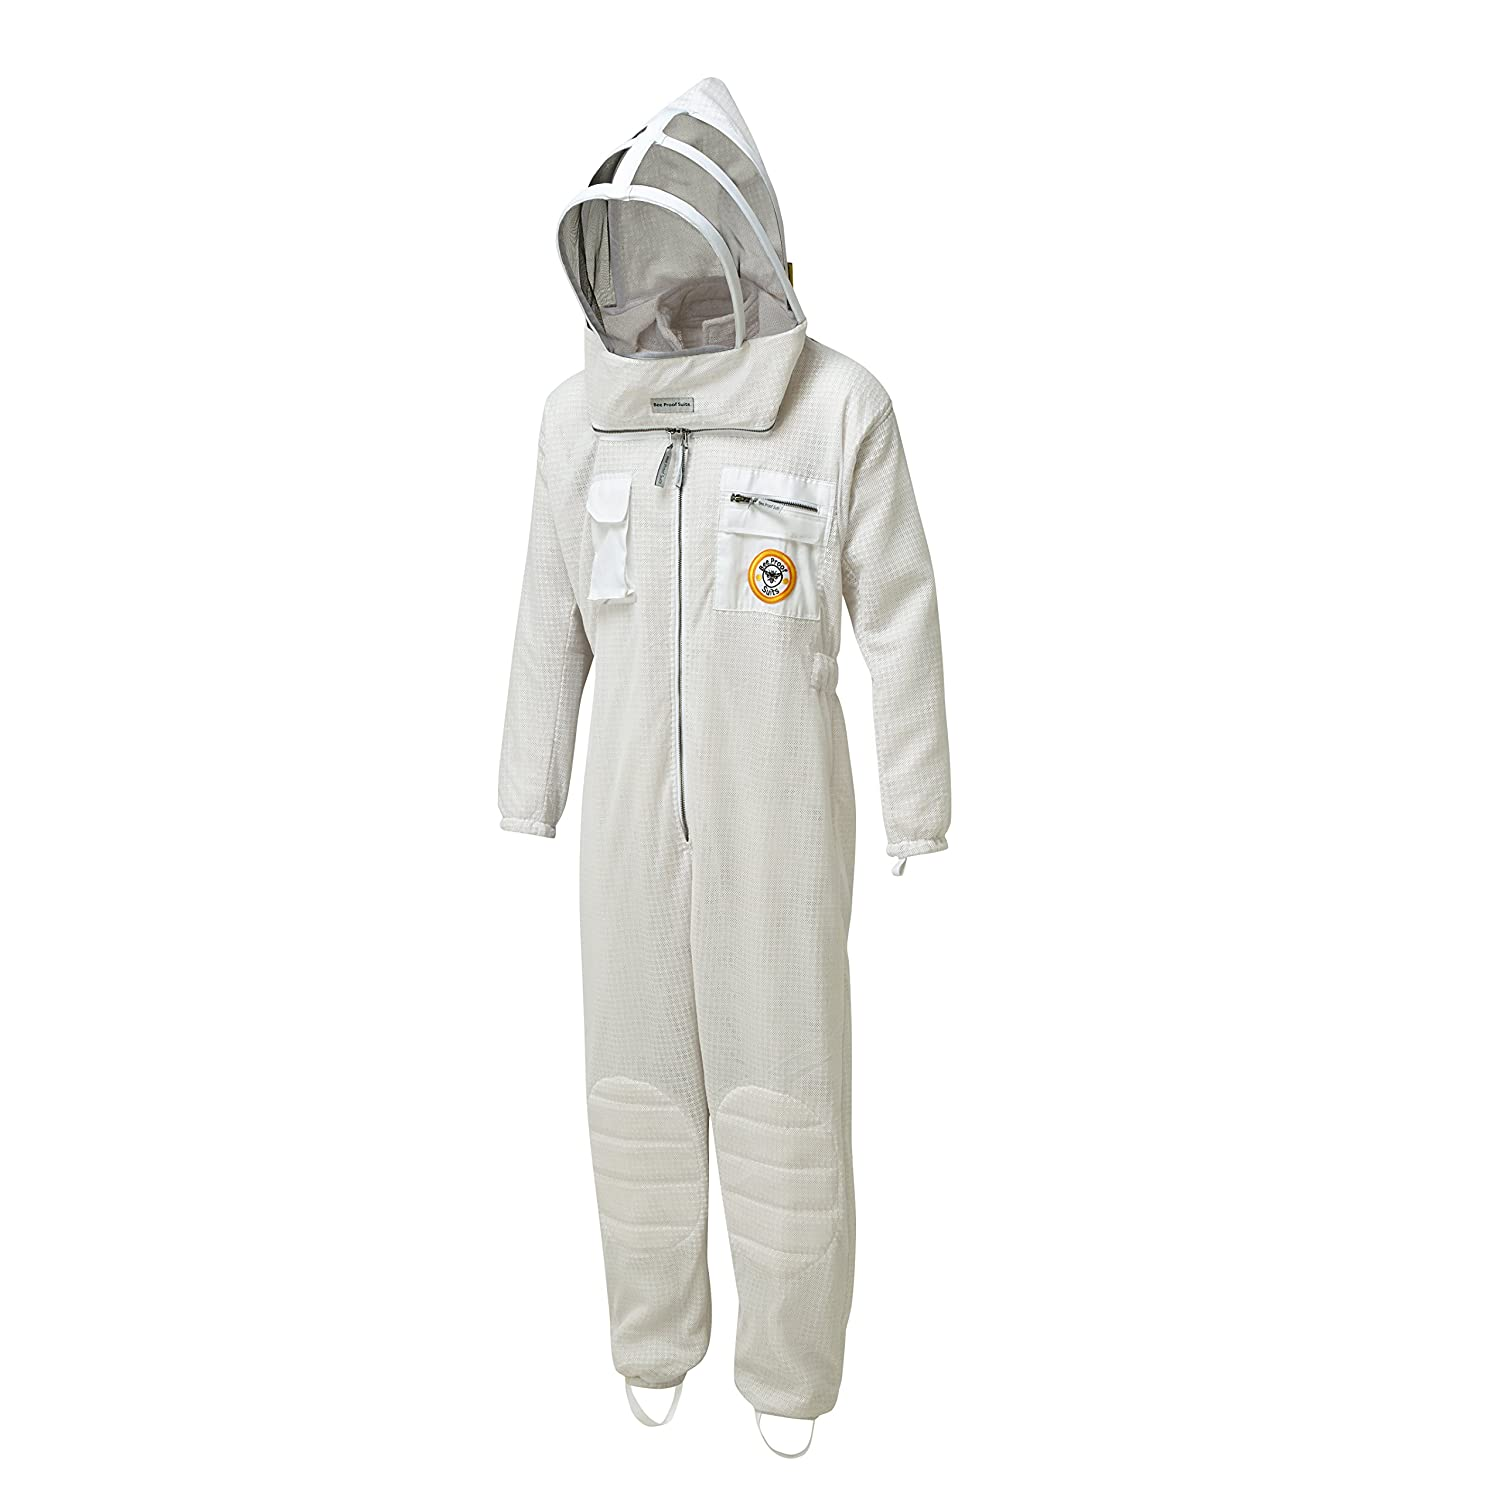 Bee Proof Suits Zonda Ventilated Bee Suit Triple Layer Mesh Fabric with both Throwback Hood and Traditional Round Hat Large L